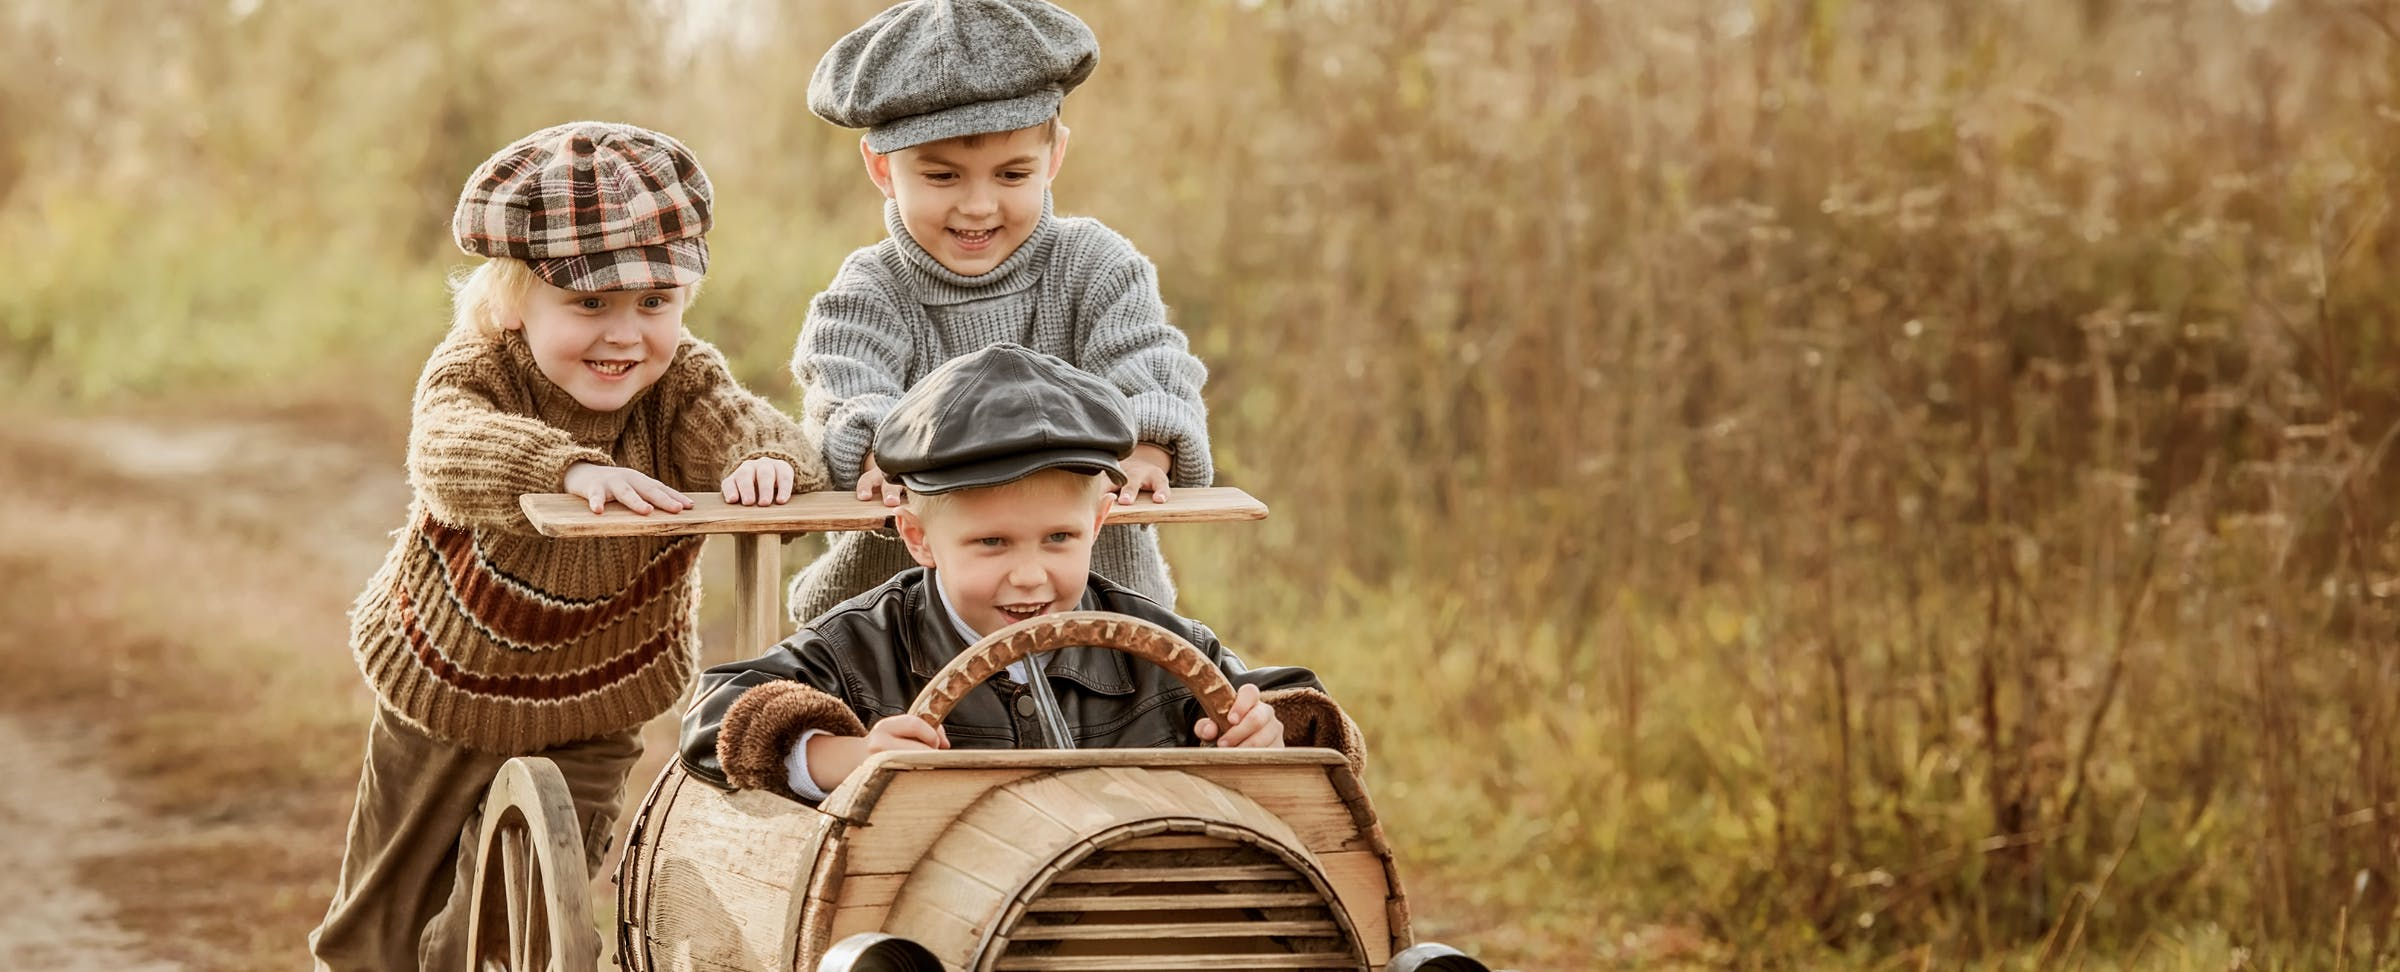 How Childhood Has Changed (and How That Impacts Education)